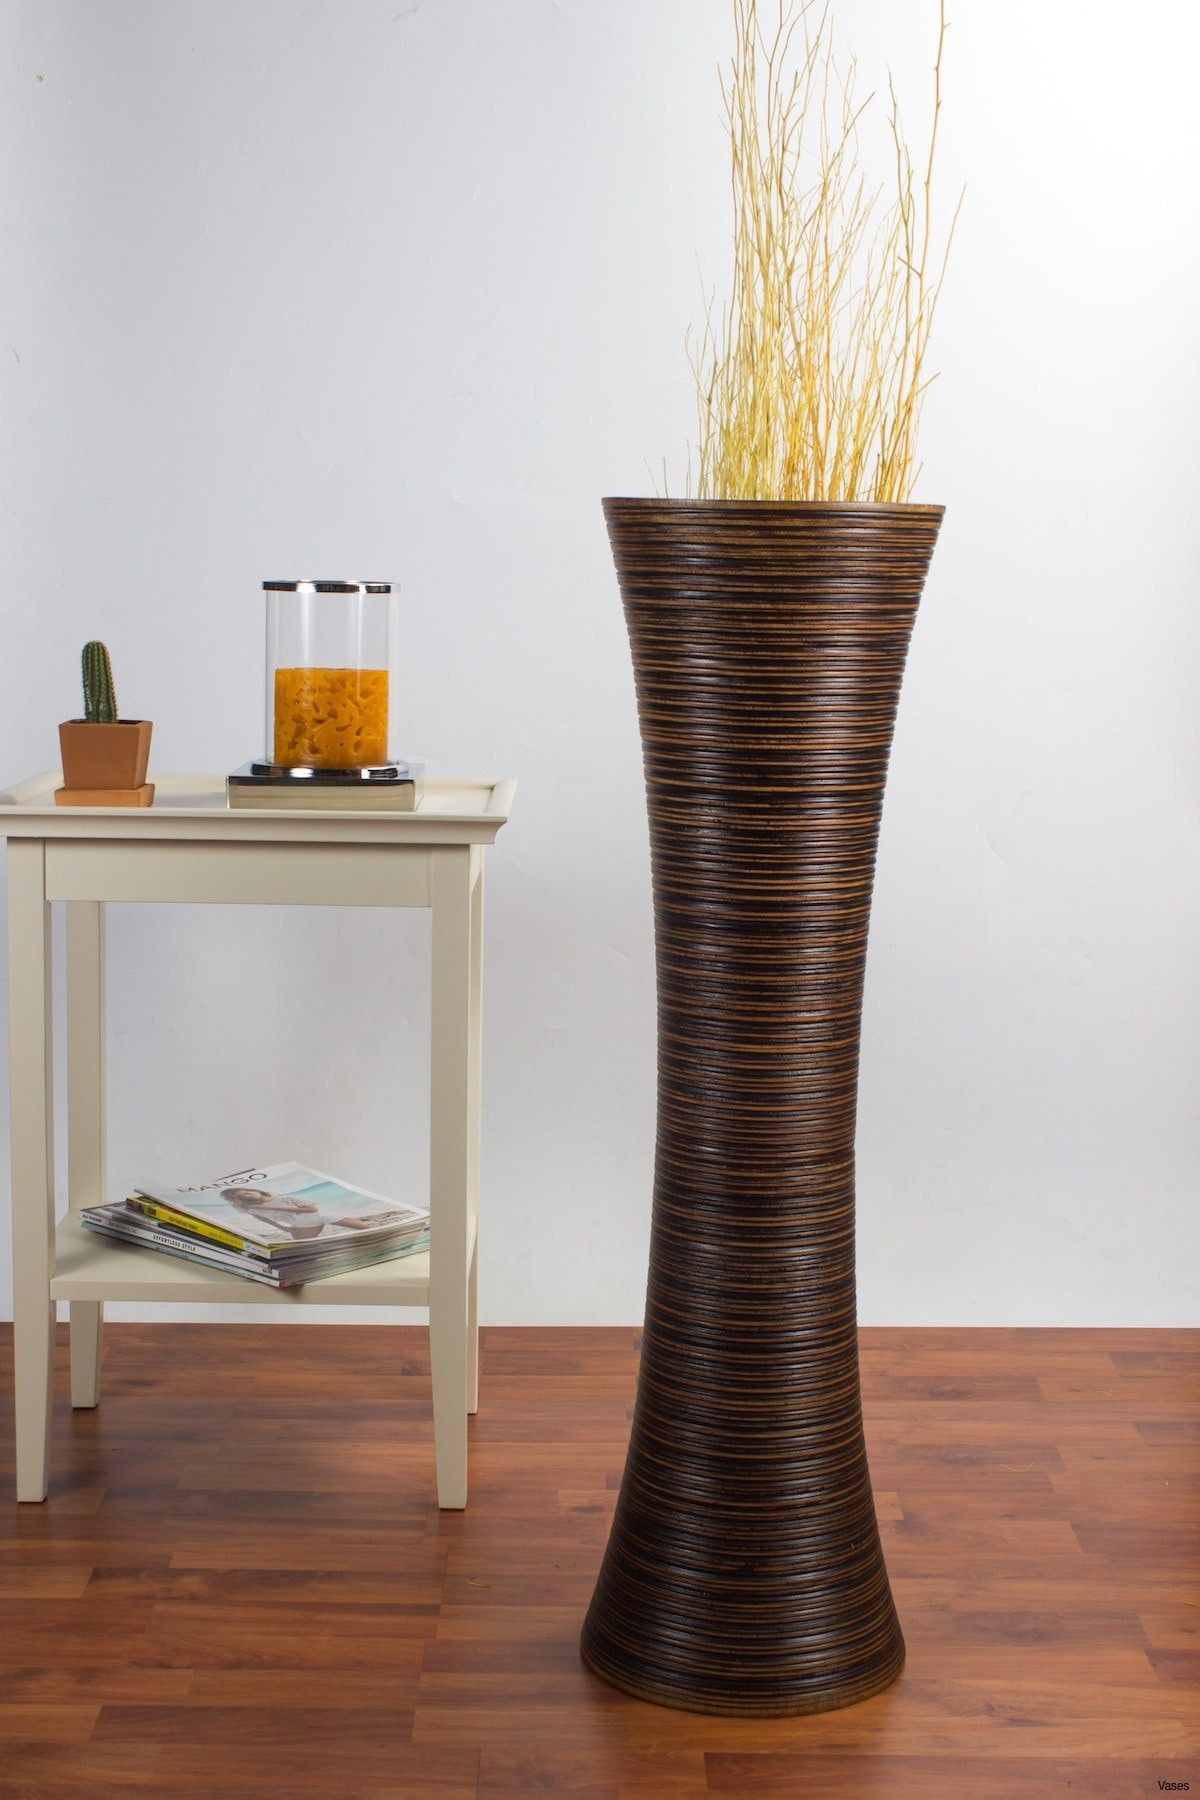 cheap brown vases of tall decorative vases luxury decorative floor vases fresh d dkbrw within tall decorative vases luxury decorative floor vases fresh d dkbrw 5749 1h vases tall brown i